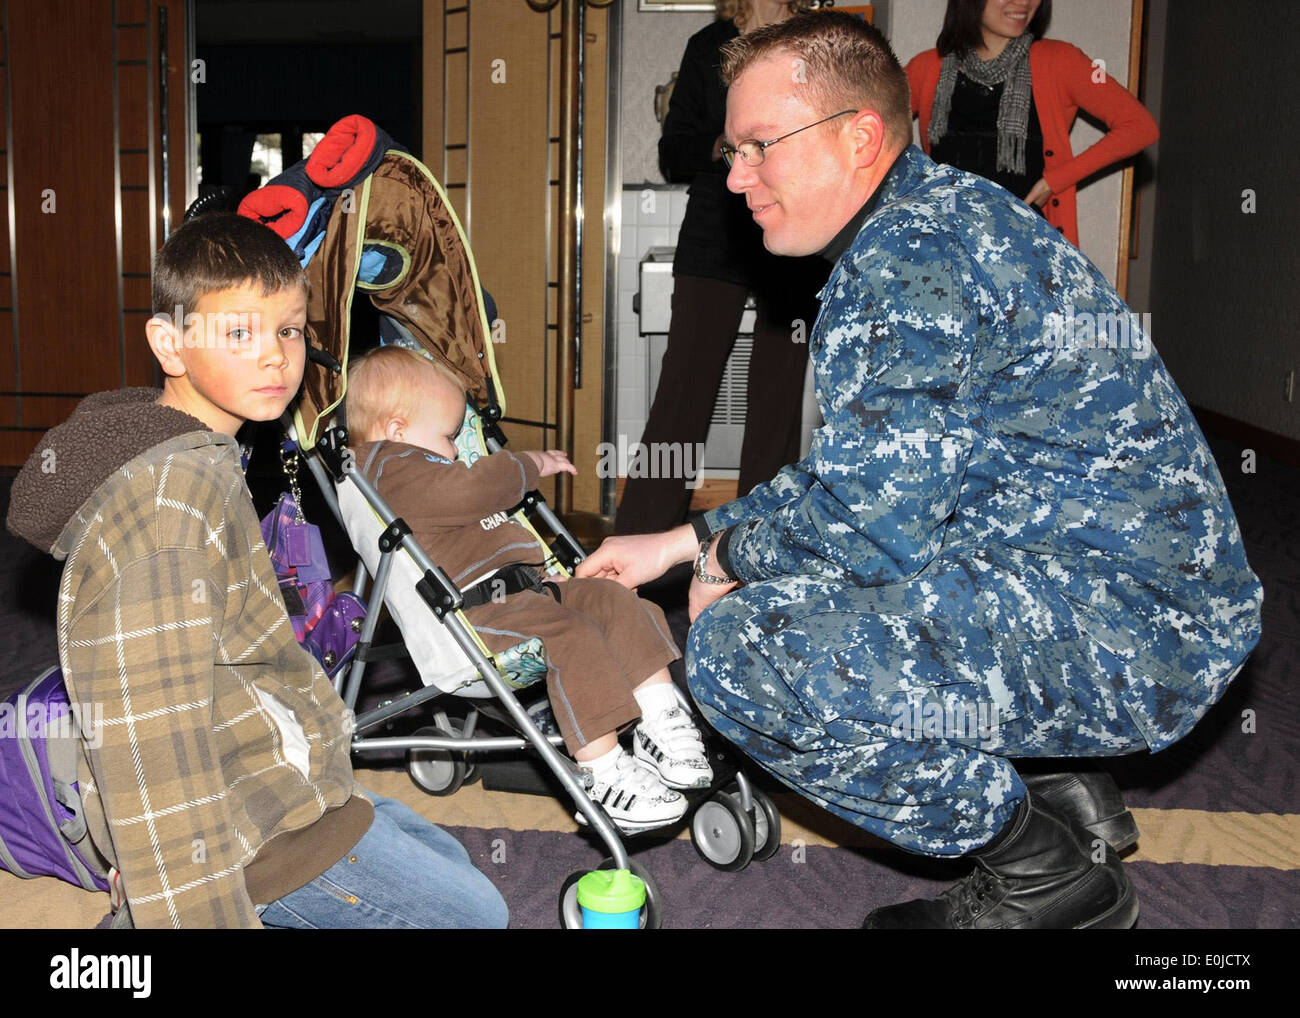 Chief Navy Counselor Stock Photos & Chief Navy Counselor Stock ...